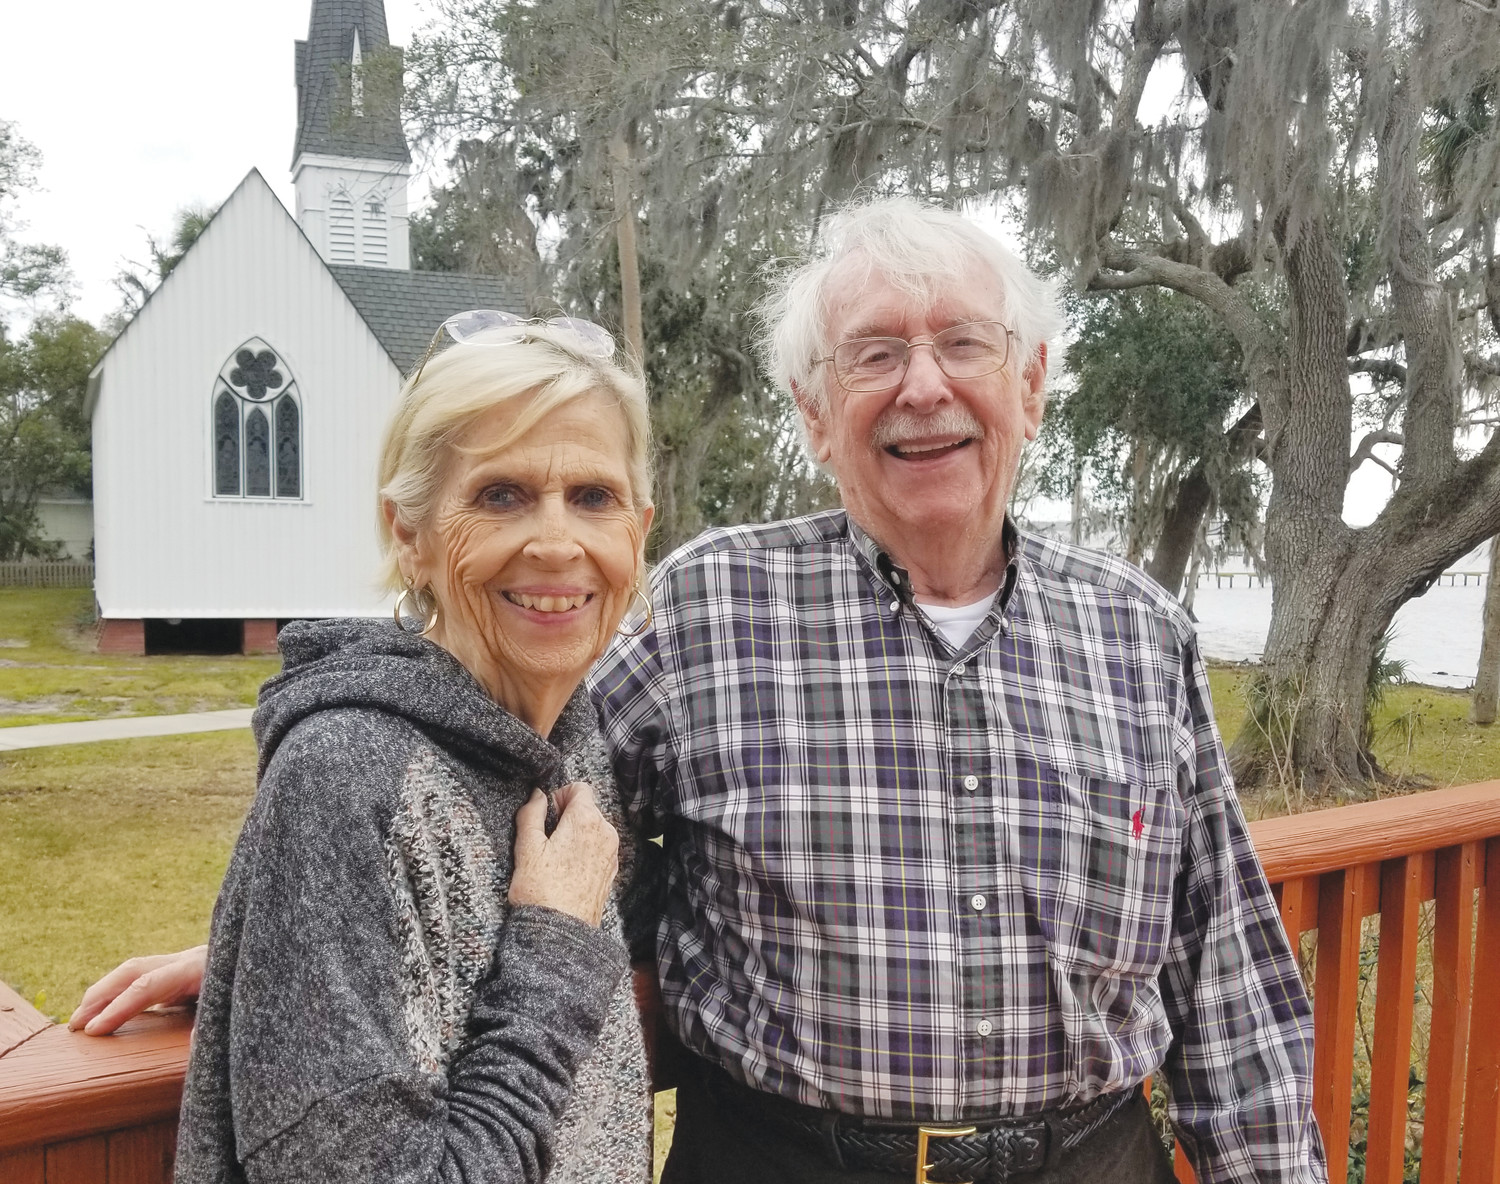 Susan and Alan Swain are the grandparents of Natacha Mohbat, who will compete in the Winter Olympics in South Korea. During her many extended visits to the Fleming Island area over the years, she attended church with her grandparents at St. Mary's Episcopal in Green Cove Springs.